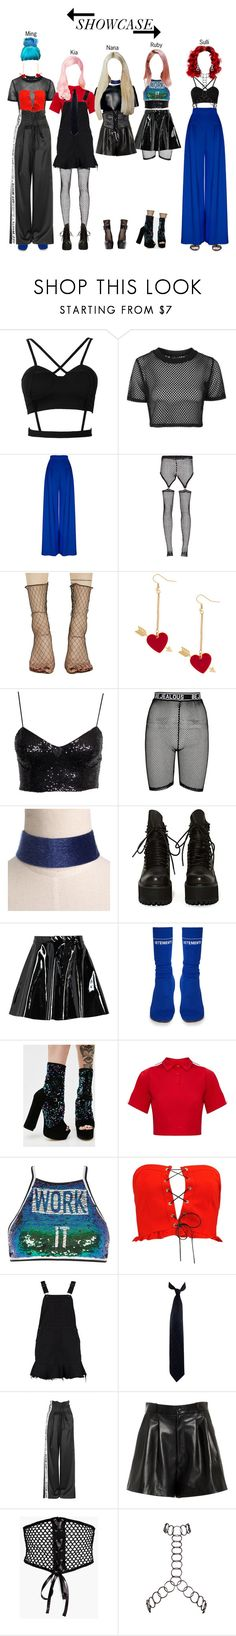 """""""BABY (아기) — Debut Showcase"""" by officialbaby ❤ liked on Polyvore featuring Topshop, Hebe Studio, Bohemian Society, CÉLINE, Ana Accessories, UNIF, Boohoo, Vetements, Nasty Gal and Shellys"""